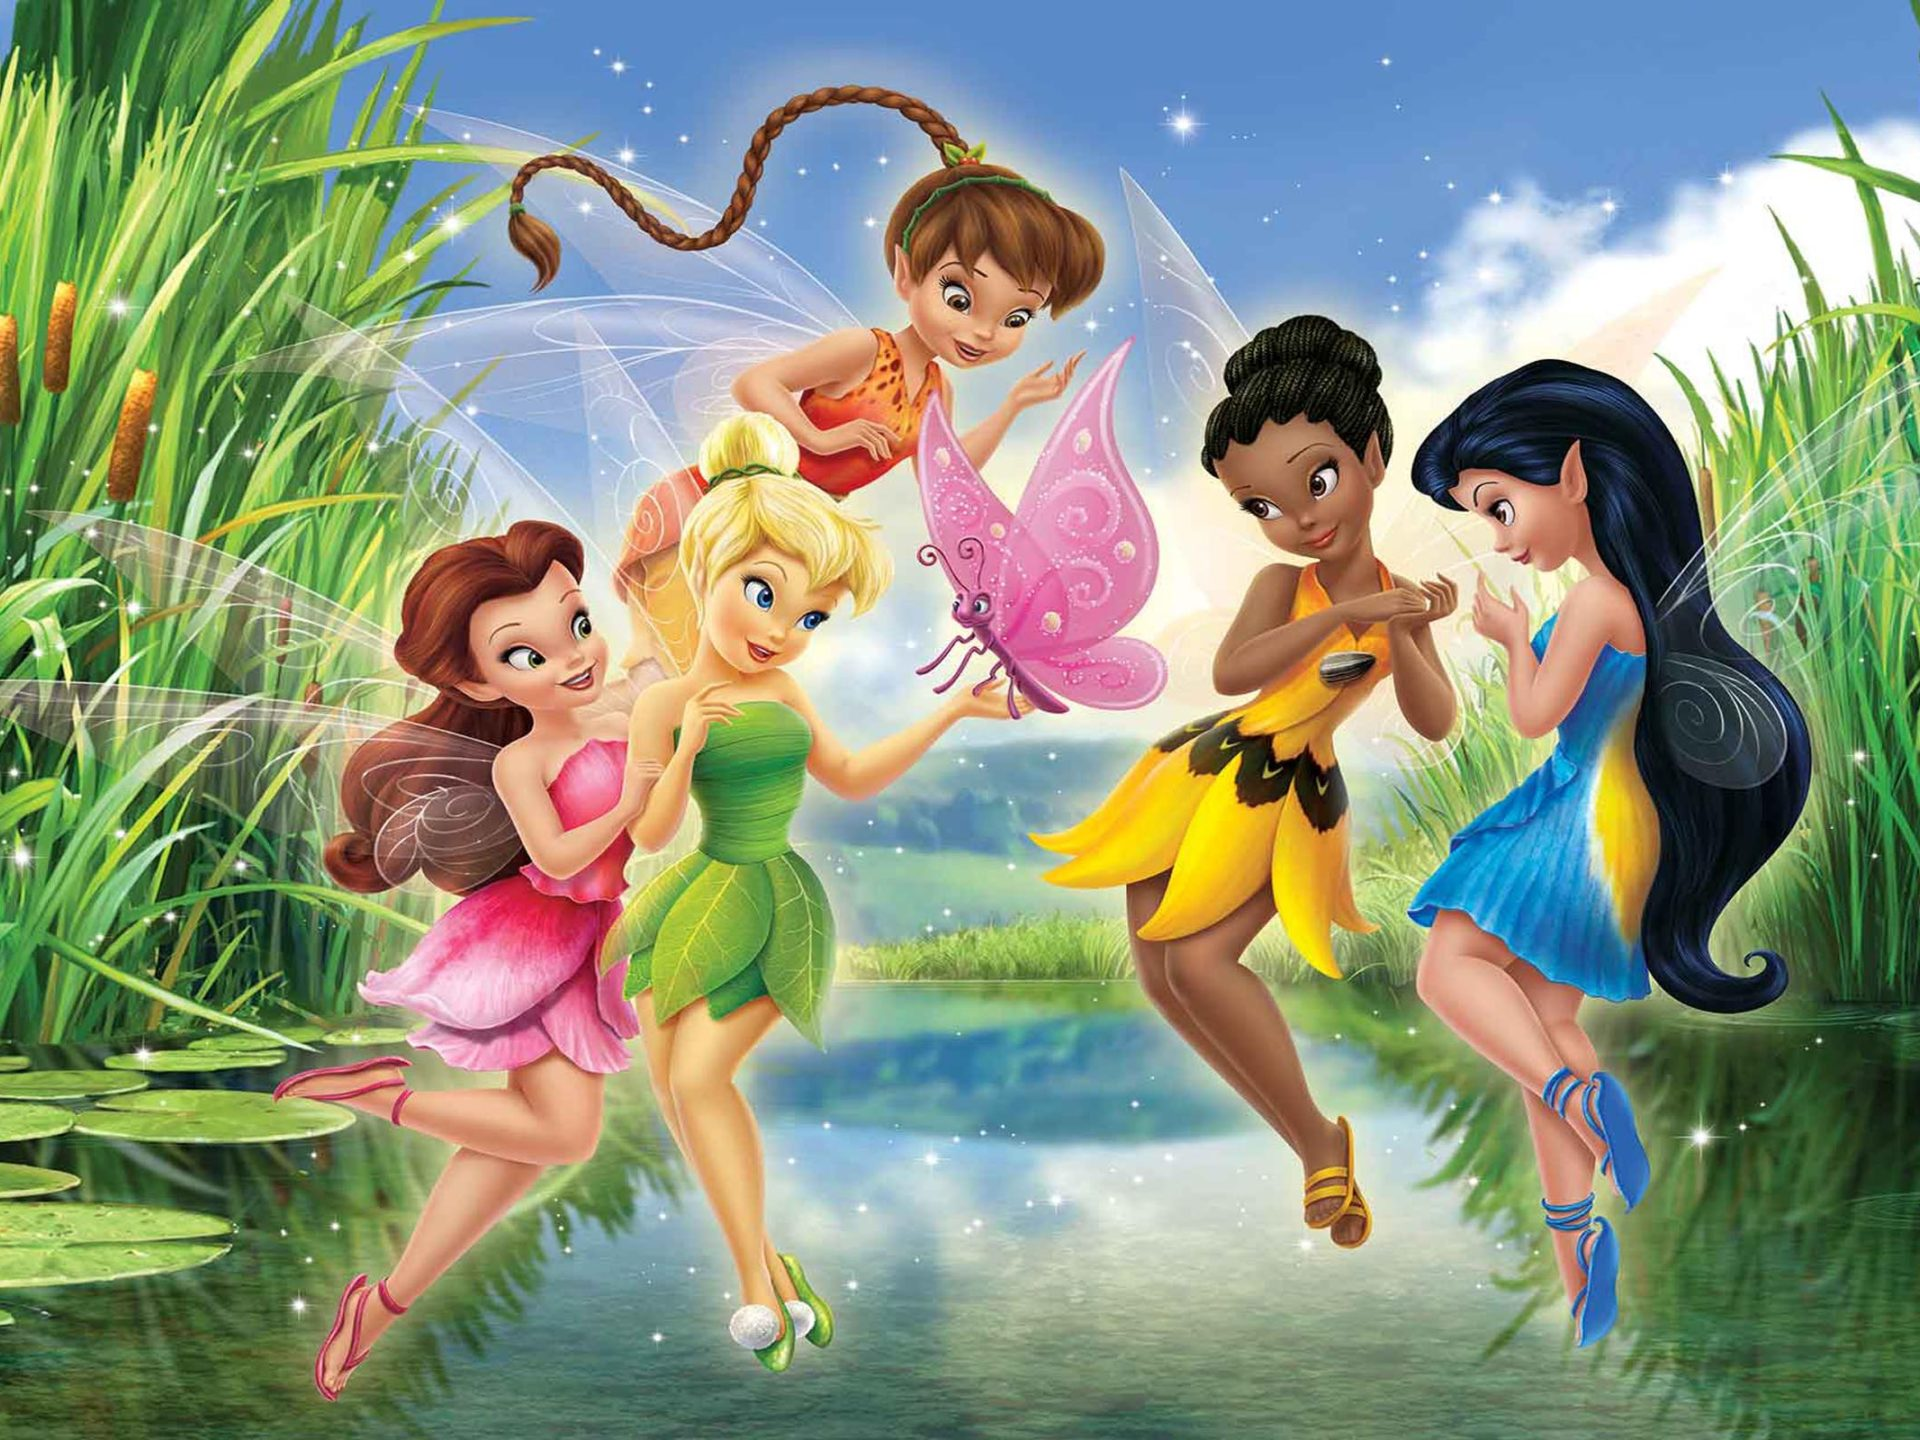 Disney Cars Wallpapers Free Tinker Bell Disney Fairies Lake Green Reeds Photo Hd